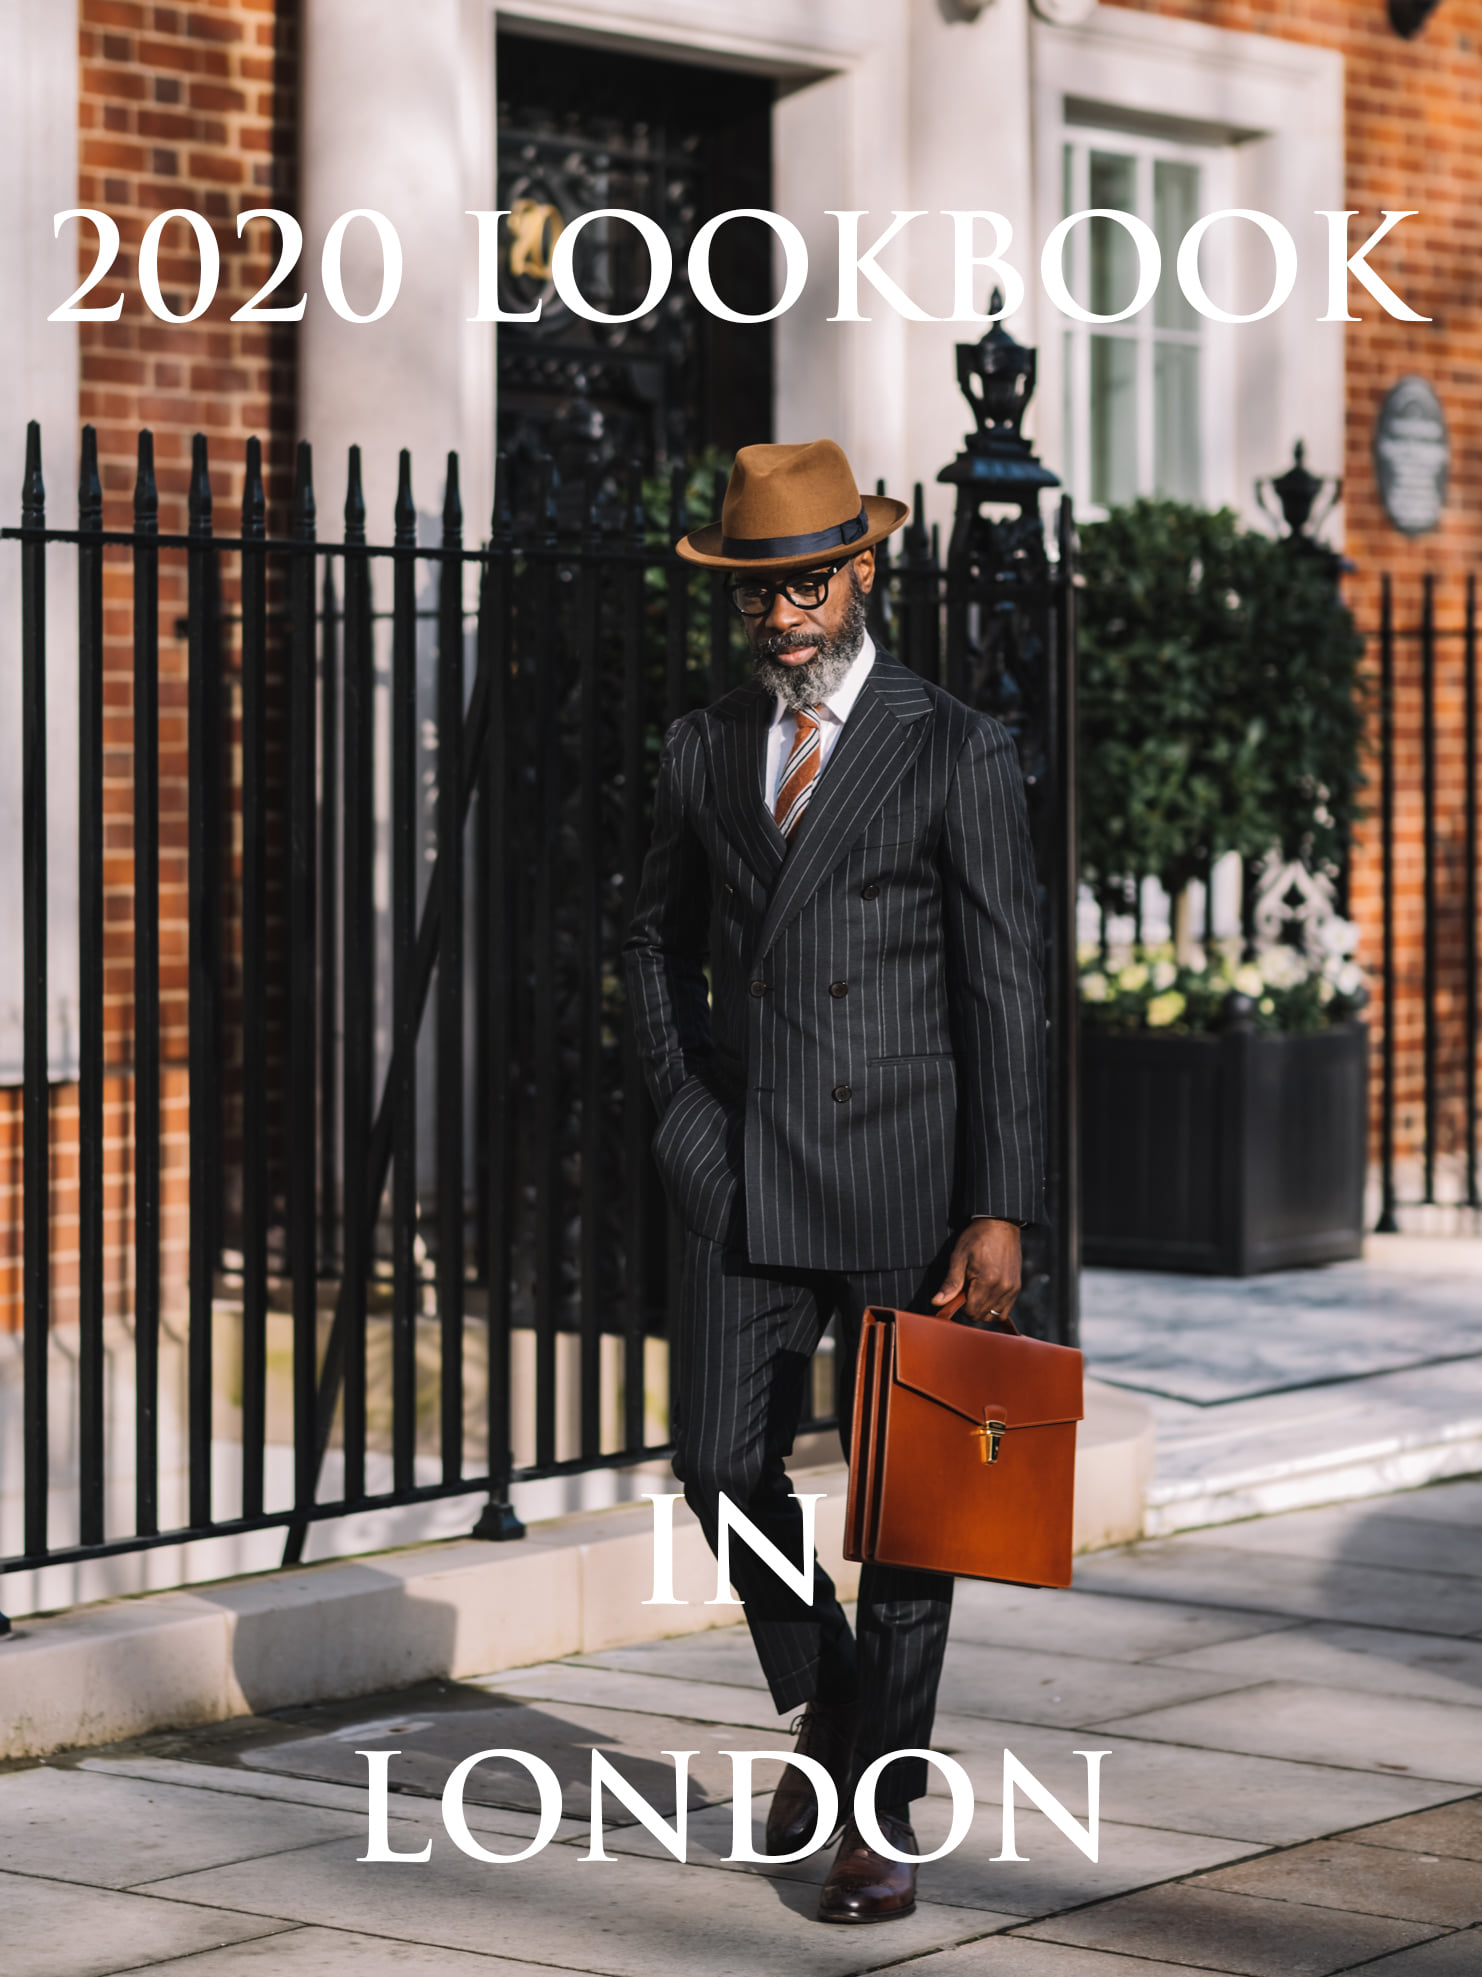 2020 LOOKBOOK 'IN LONDON'